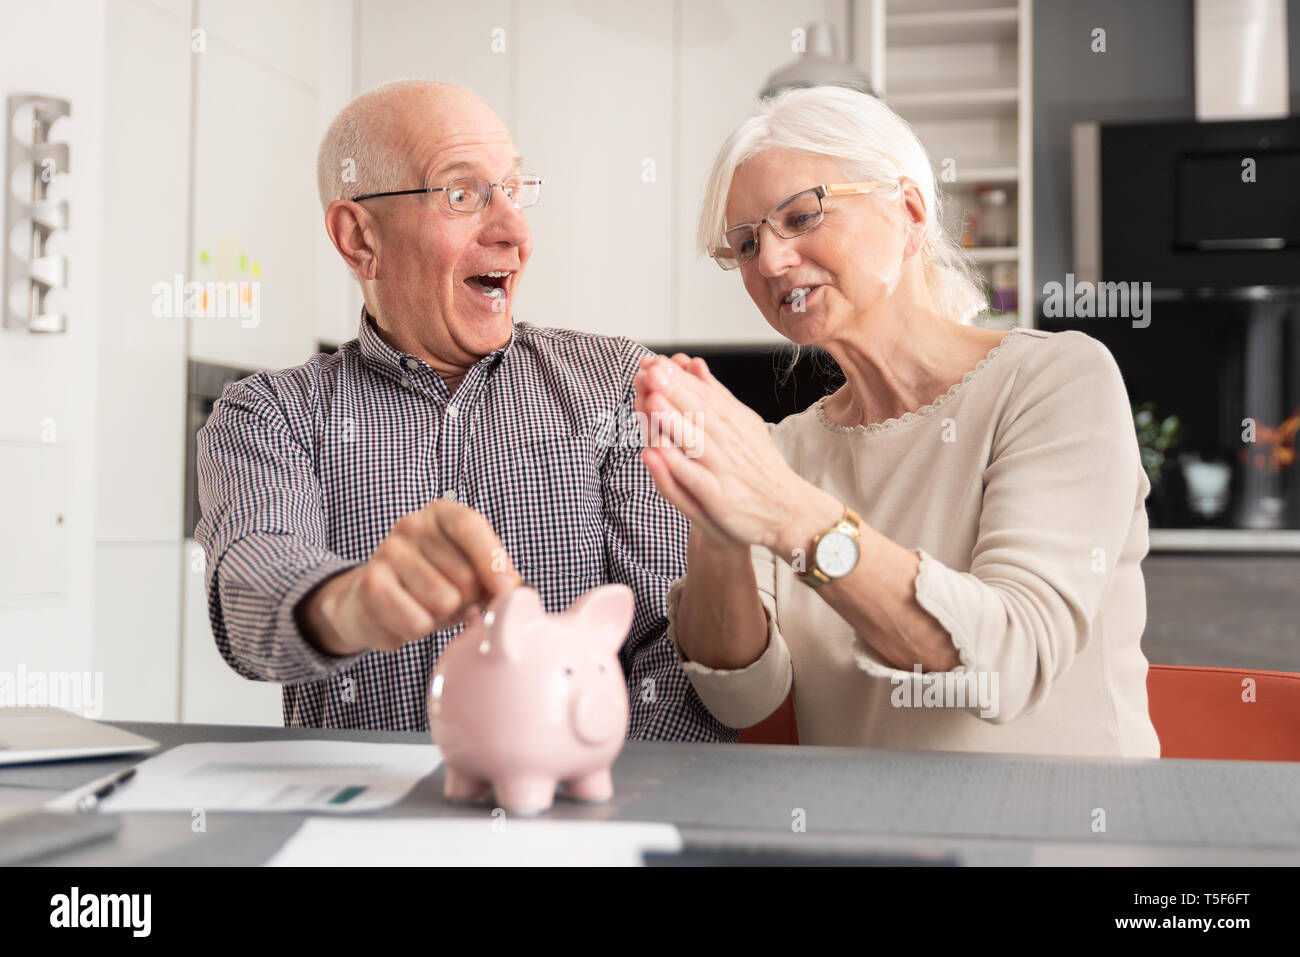 Funny photo of mature couple putting coin into piggy bank at home. Savings, pension plan concept - Stock Image